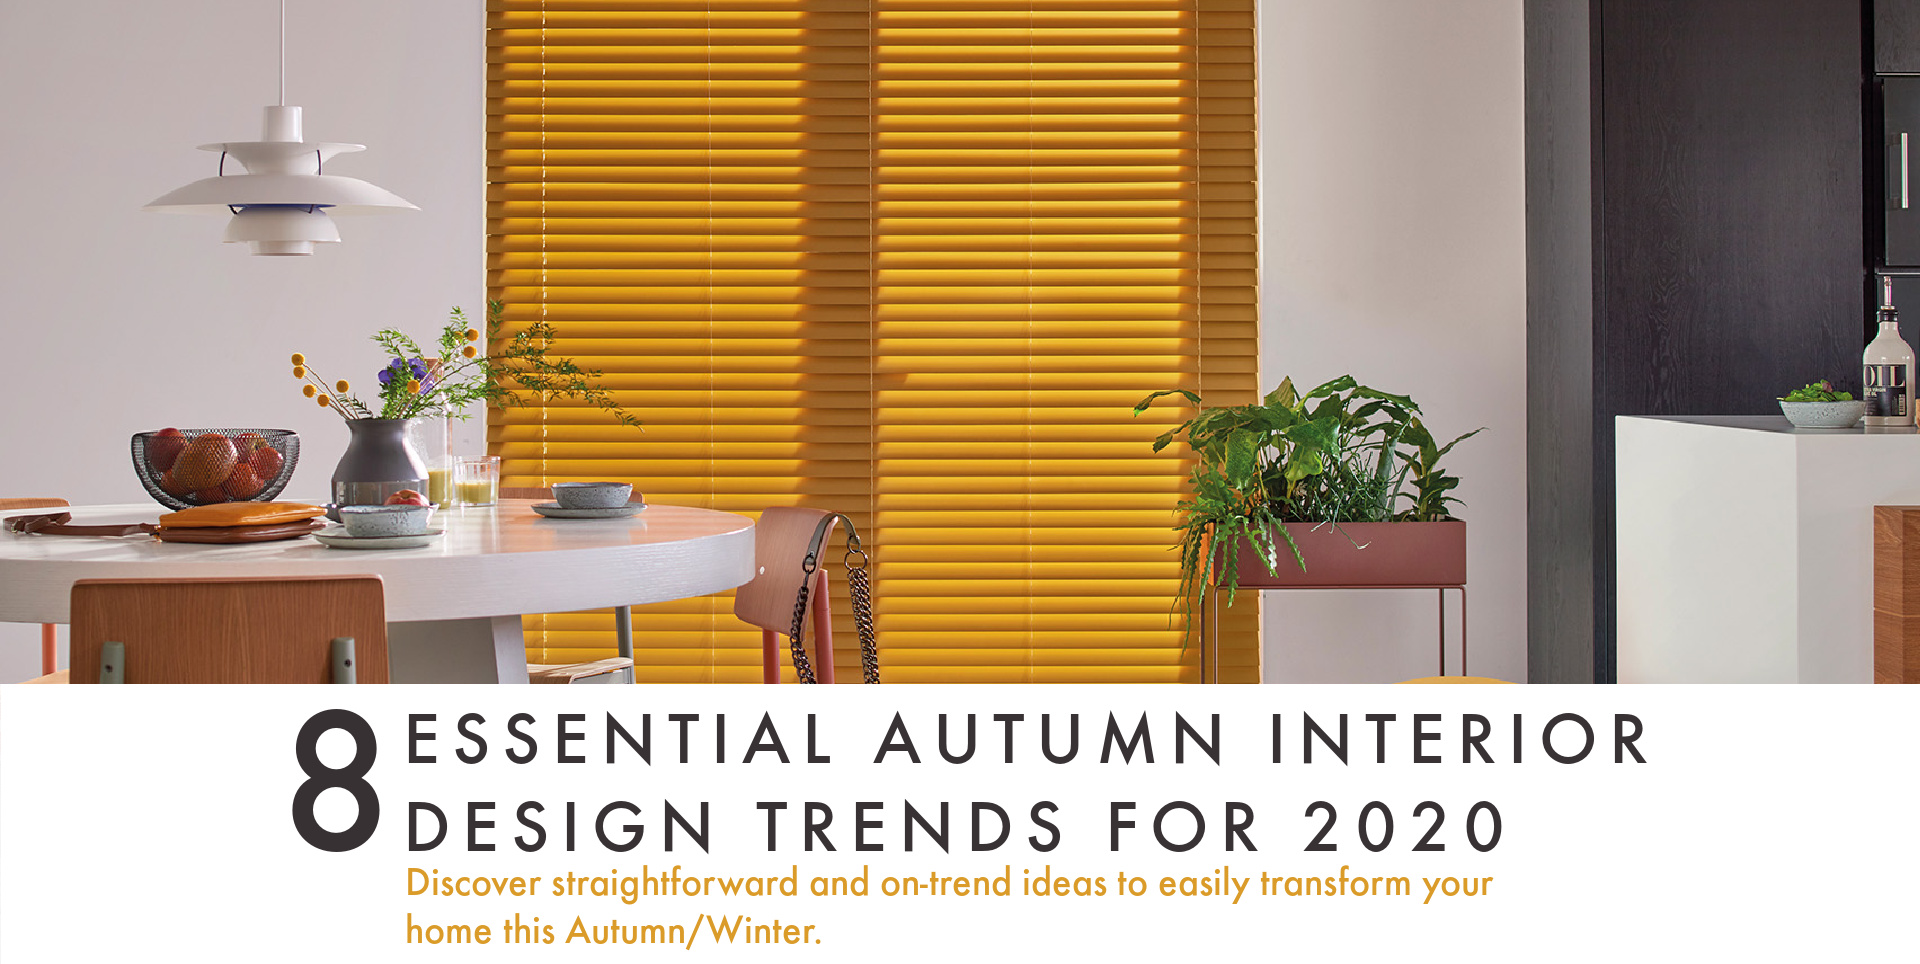 Autumn interior design trends and blind showcase